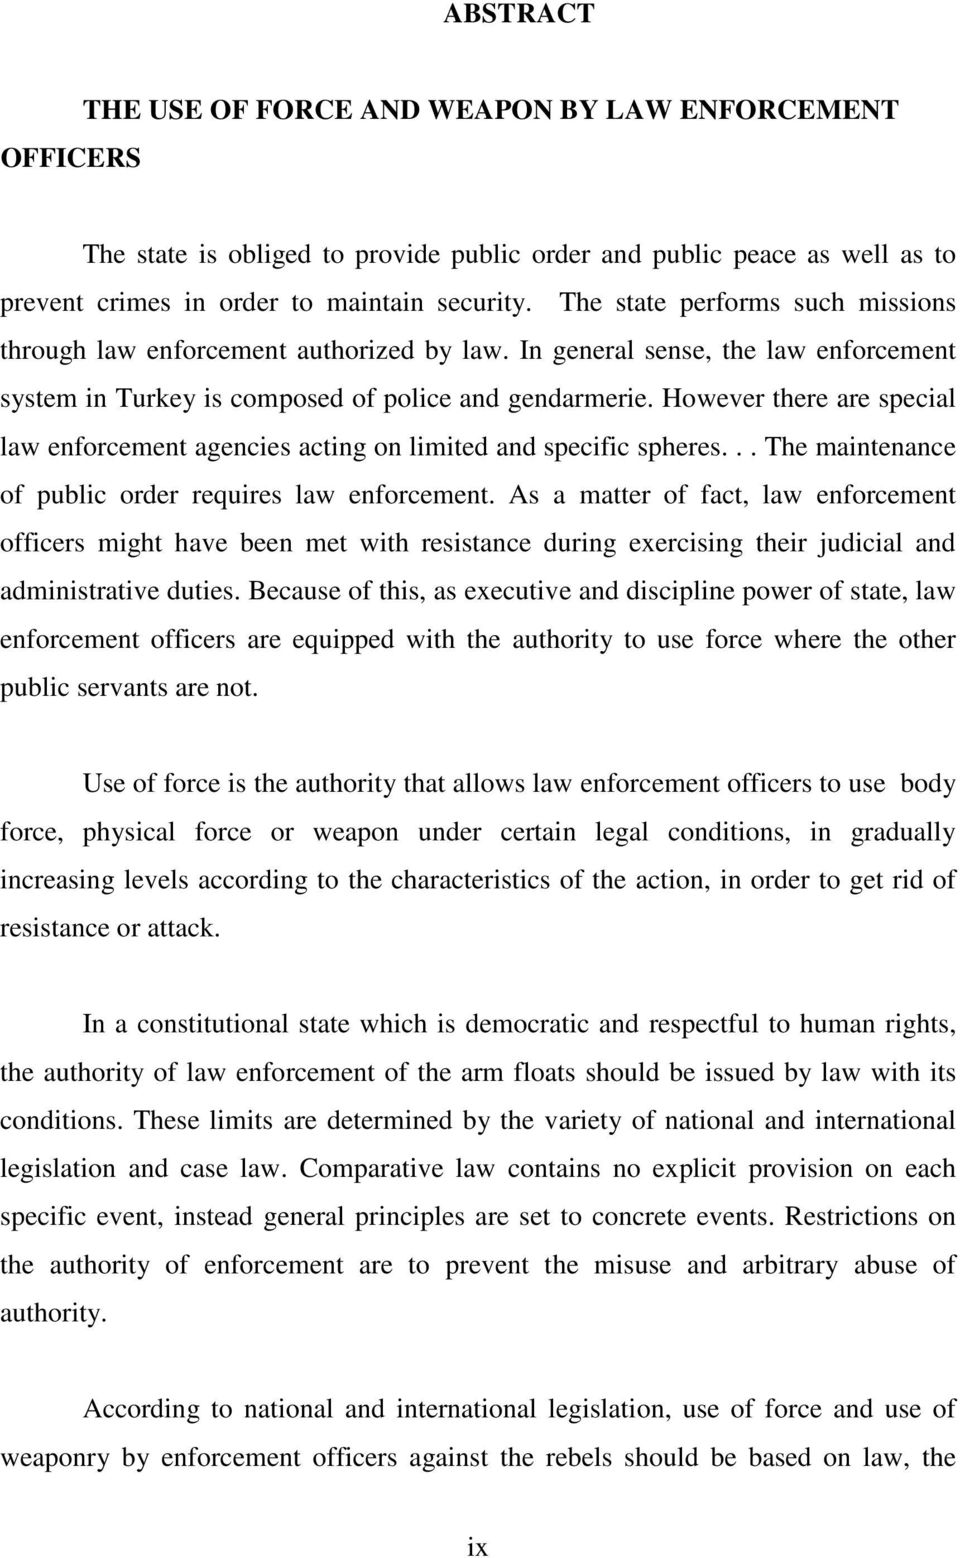 However there are special law enforcement agencies acting on limited and specific spheres... The maintenance of public order requires law enforcement.